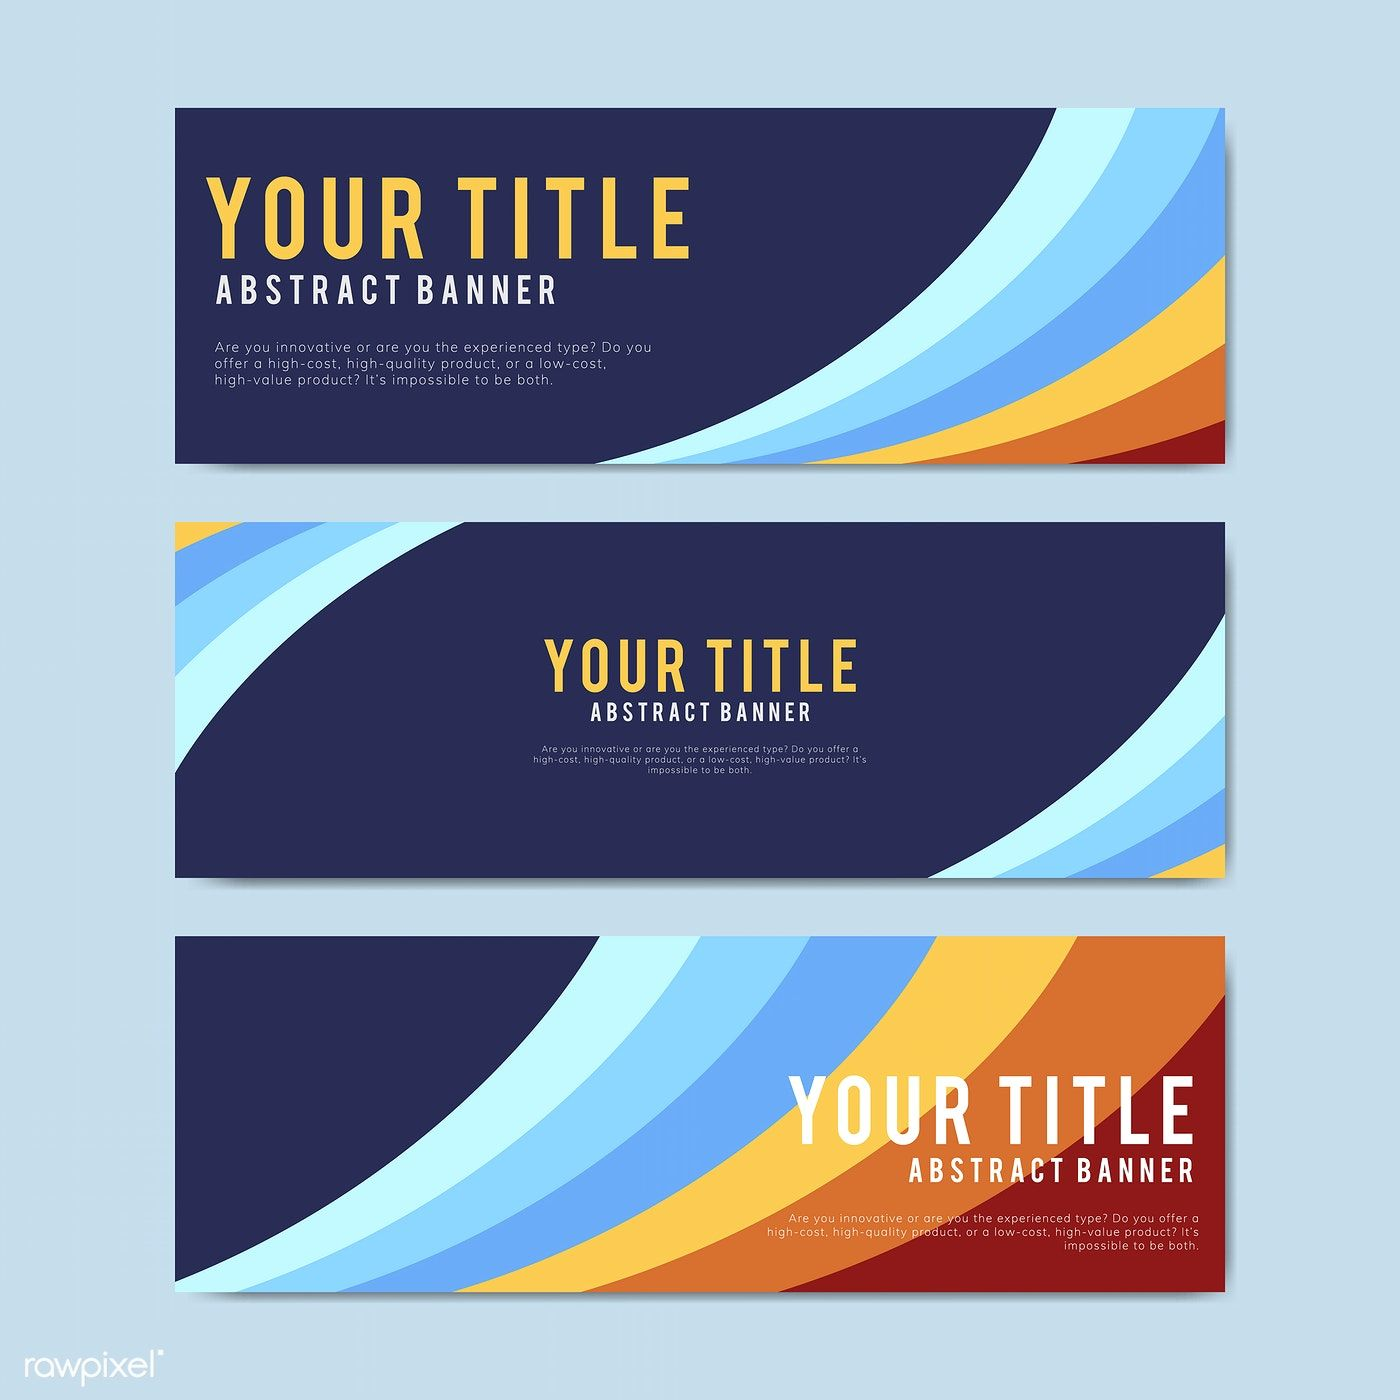 Colorful And Abstract Banner Design Templates Free Image By Rawpixel Com Banner Template Design Website Banner Design Web Banner Design